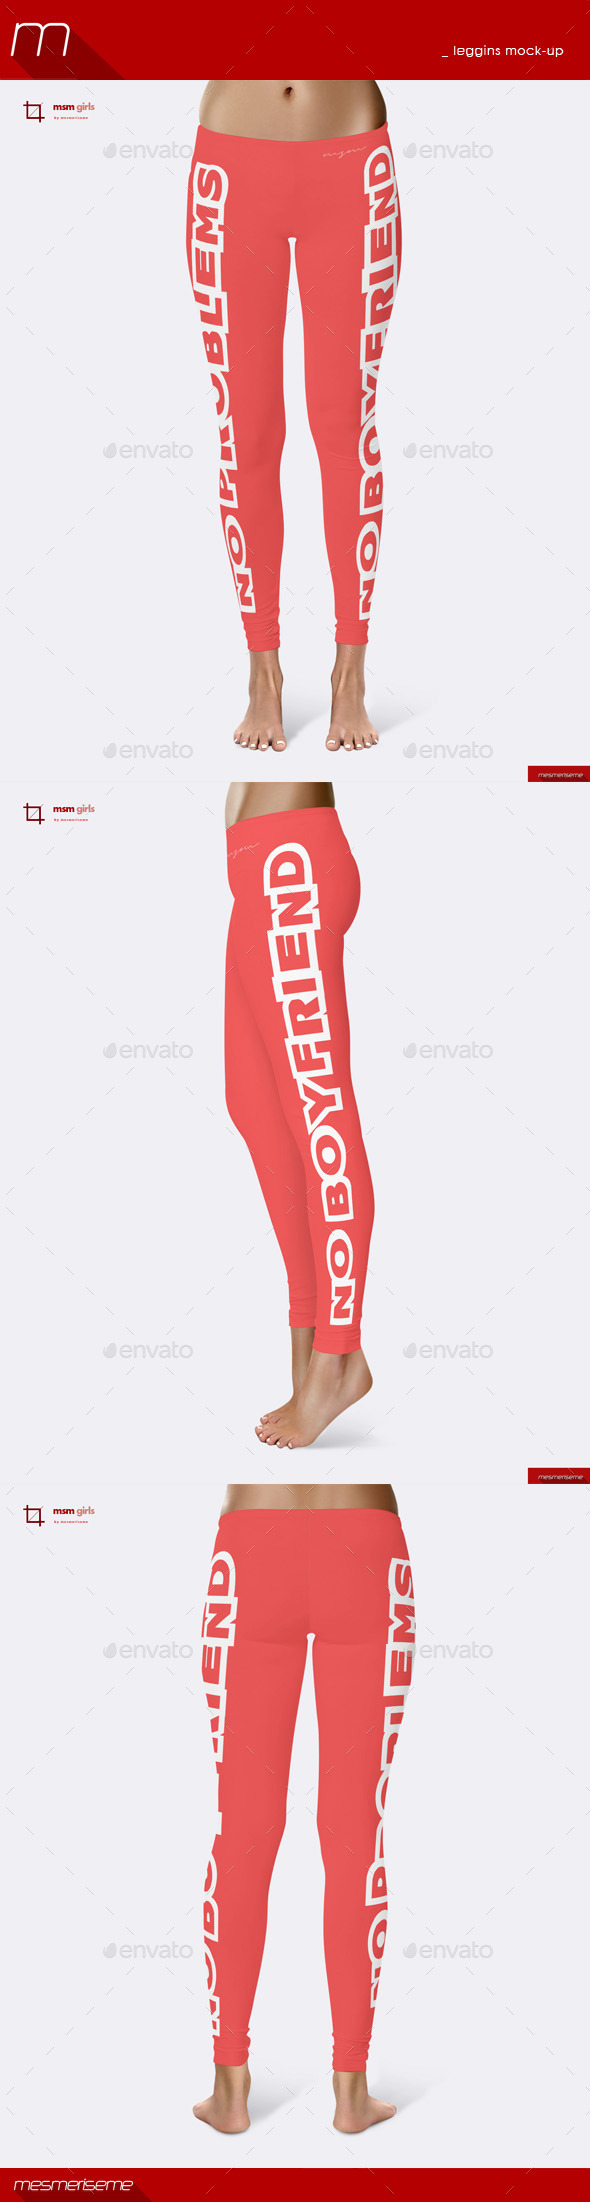 GraphicRiver Leggins Mock-up 8974480